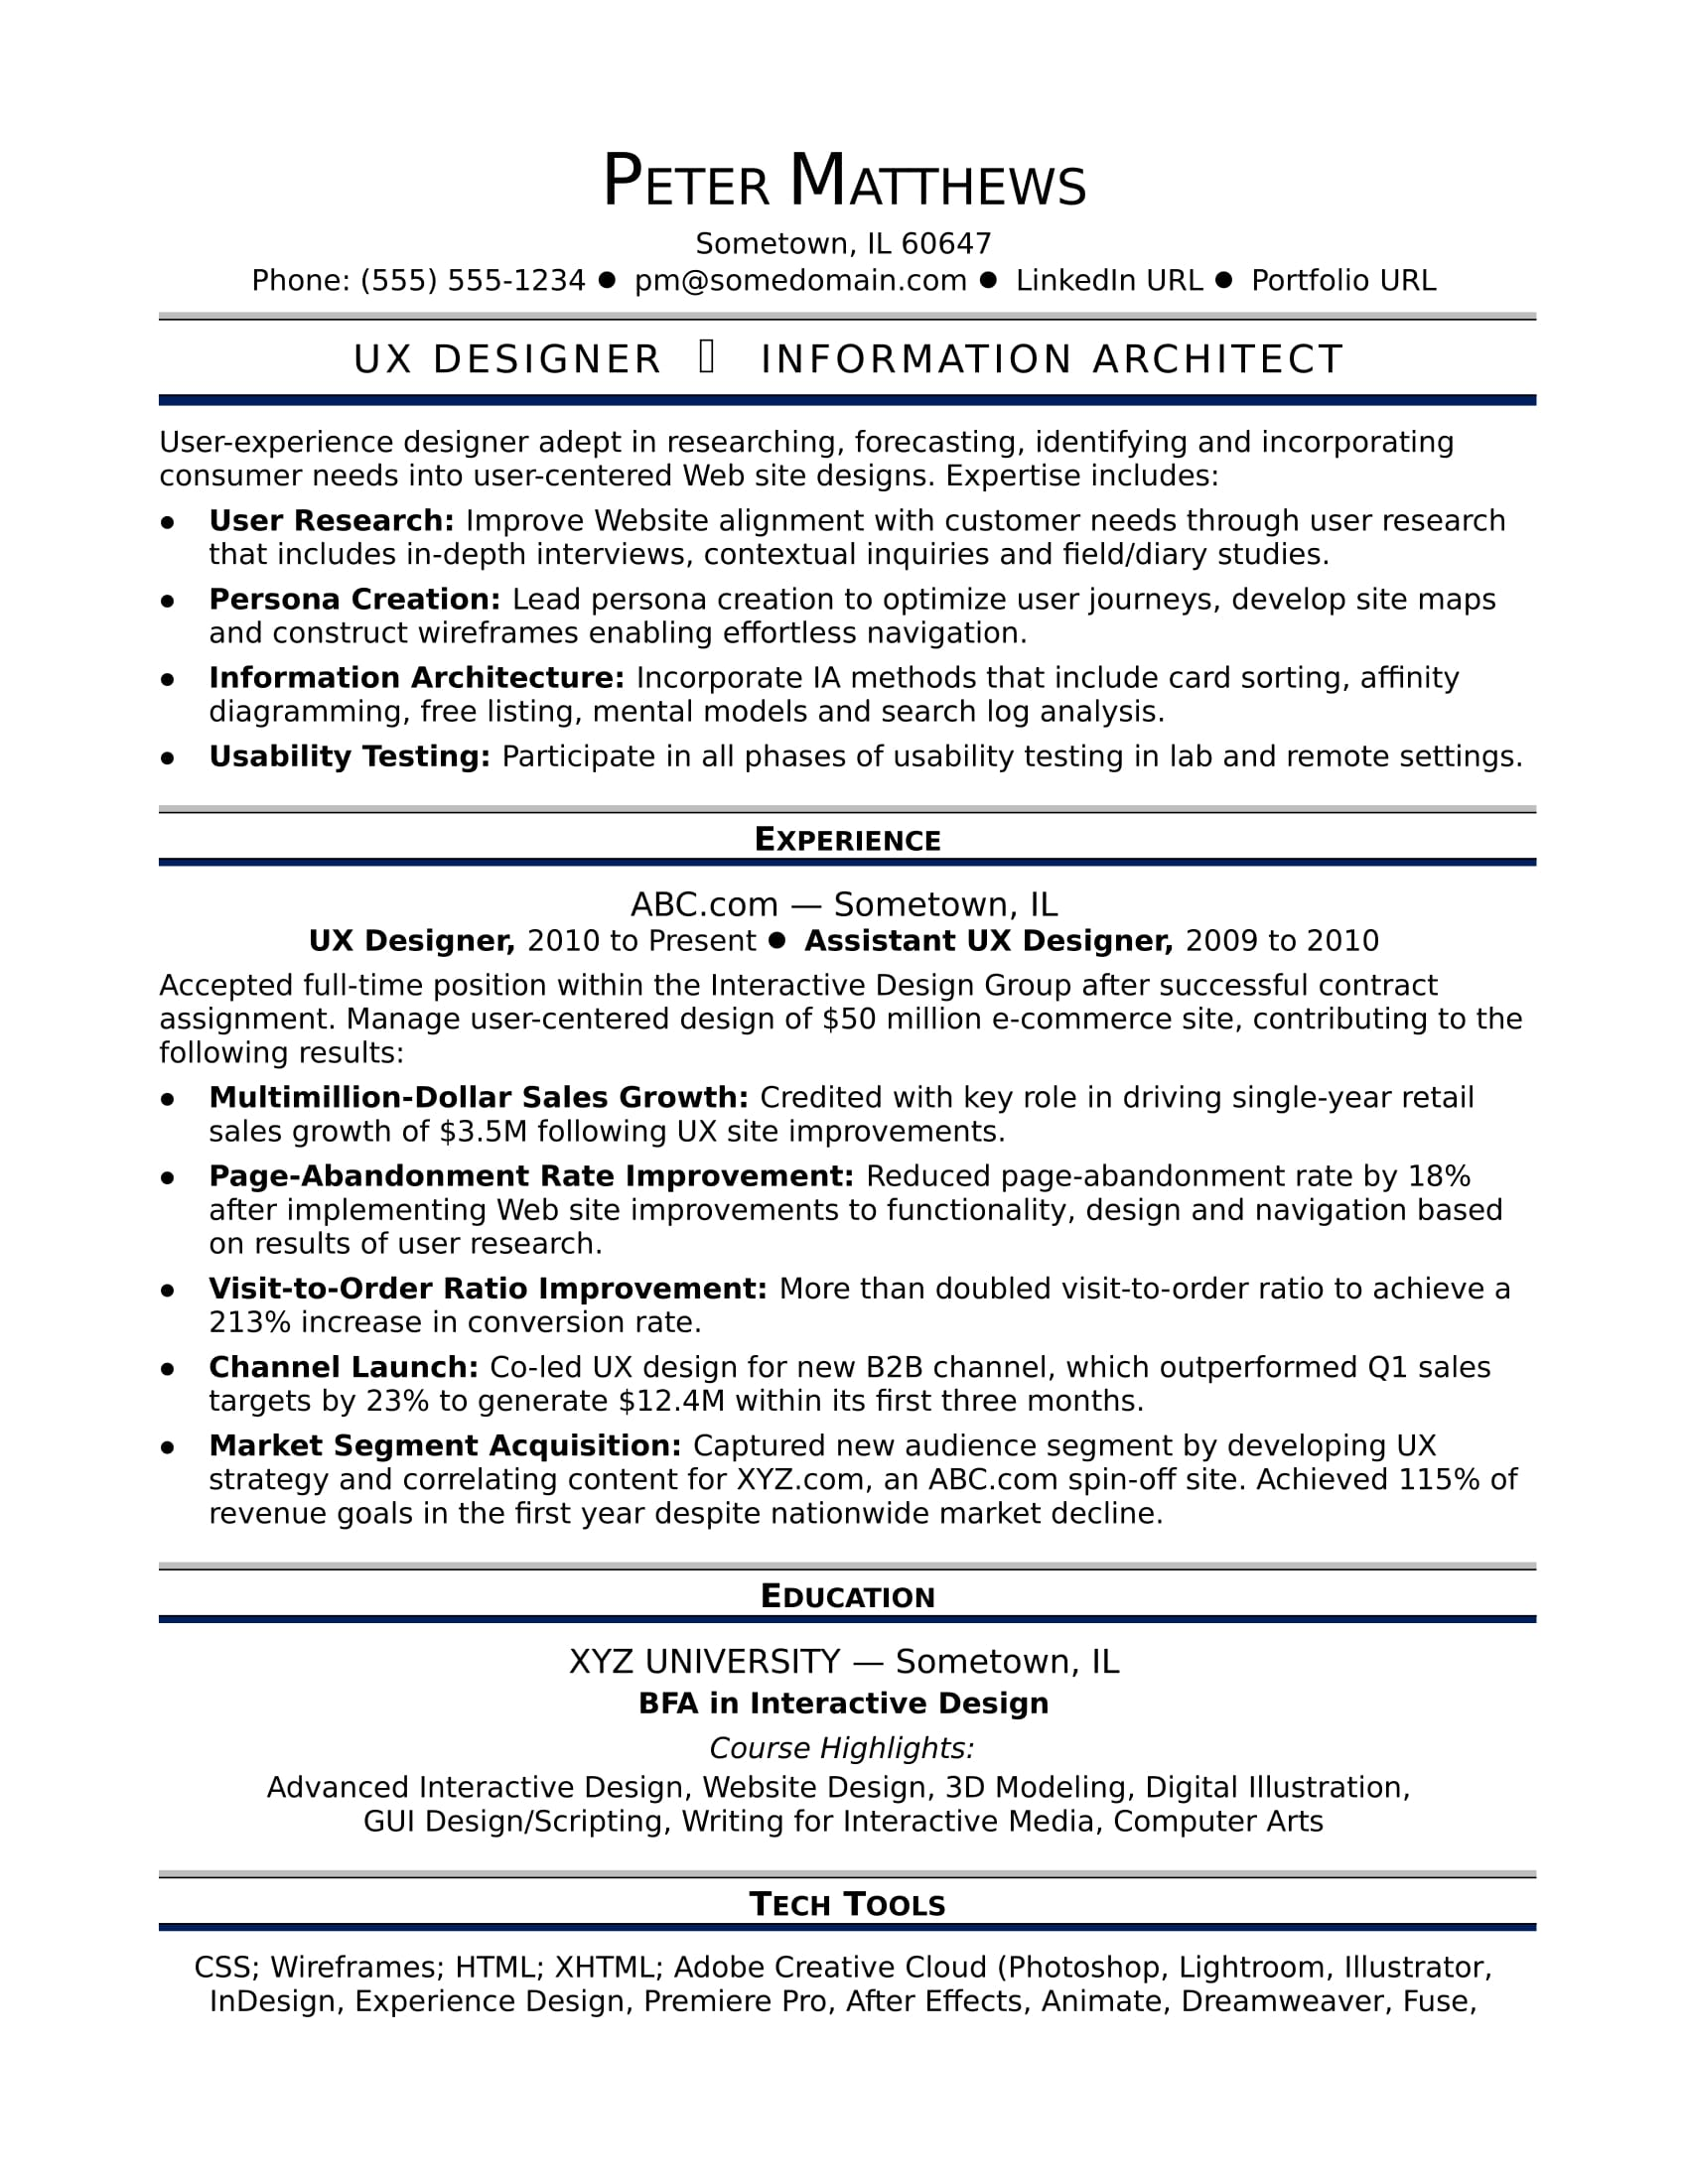 Sample Resume For A Midlevel UX Designer  User Experience Designer Resume